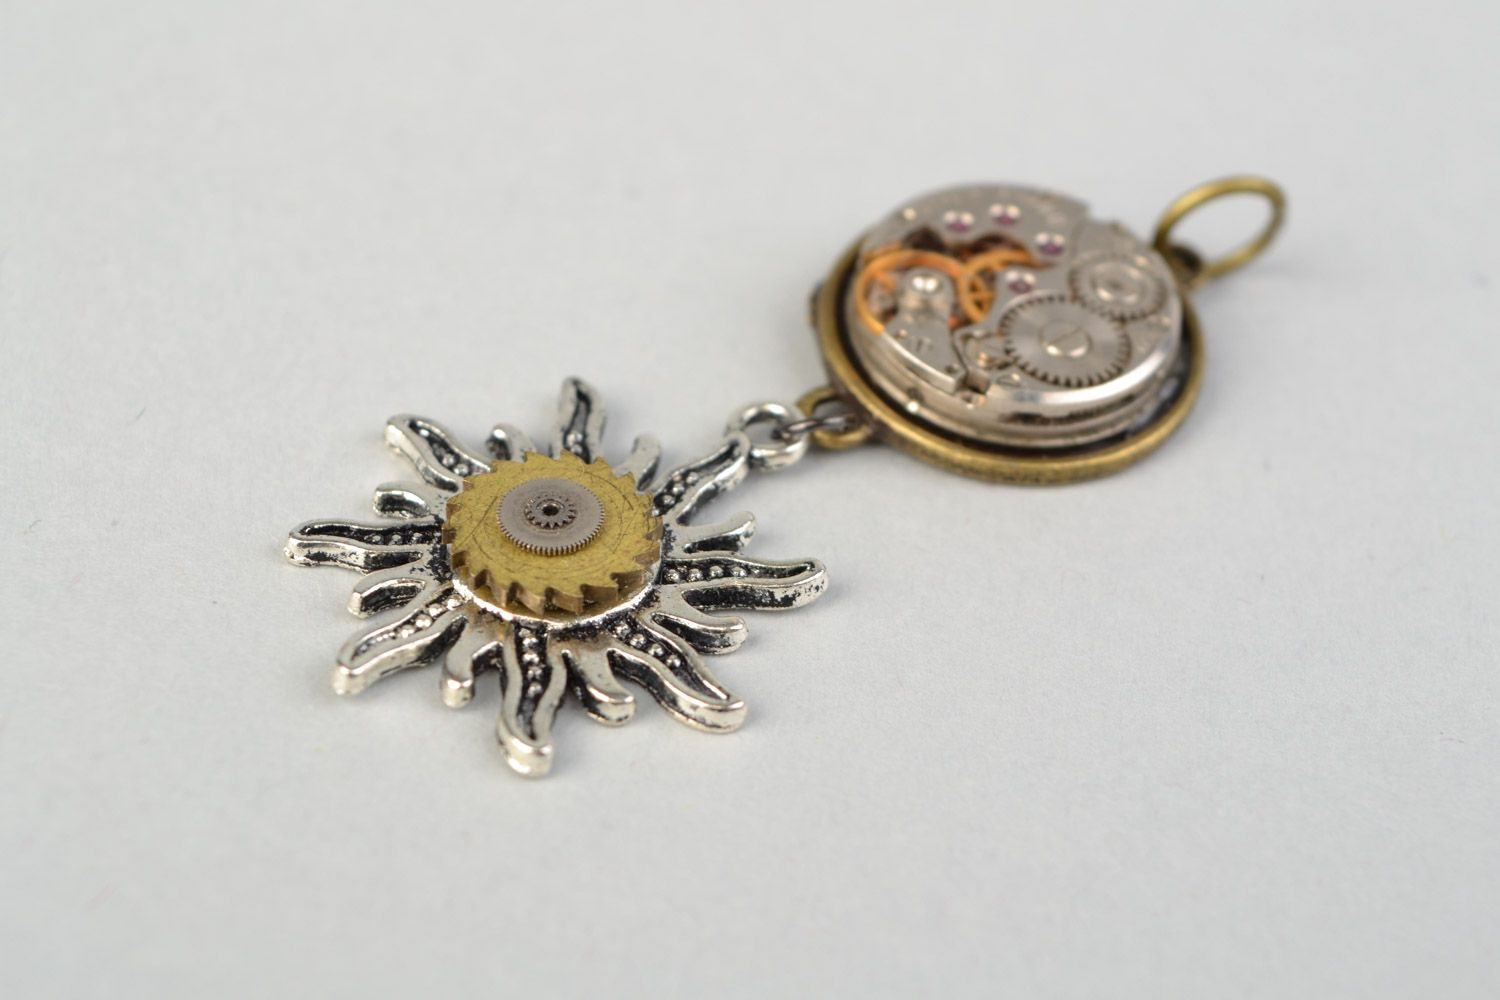 Handmade metal pendant with clock mechanism in steampunk style Sun and Time photo 4